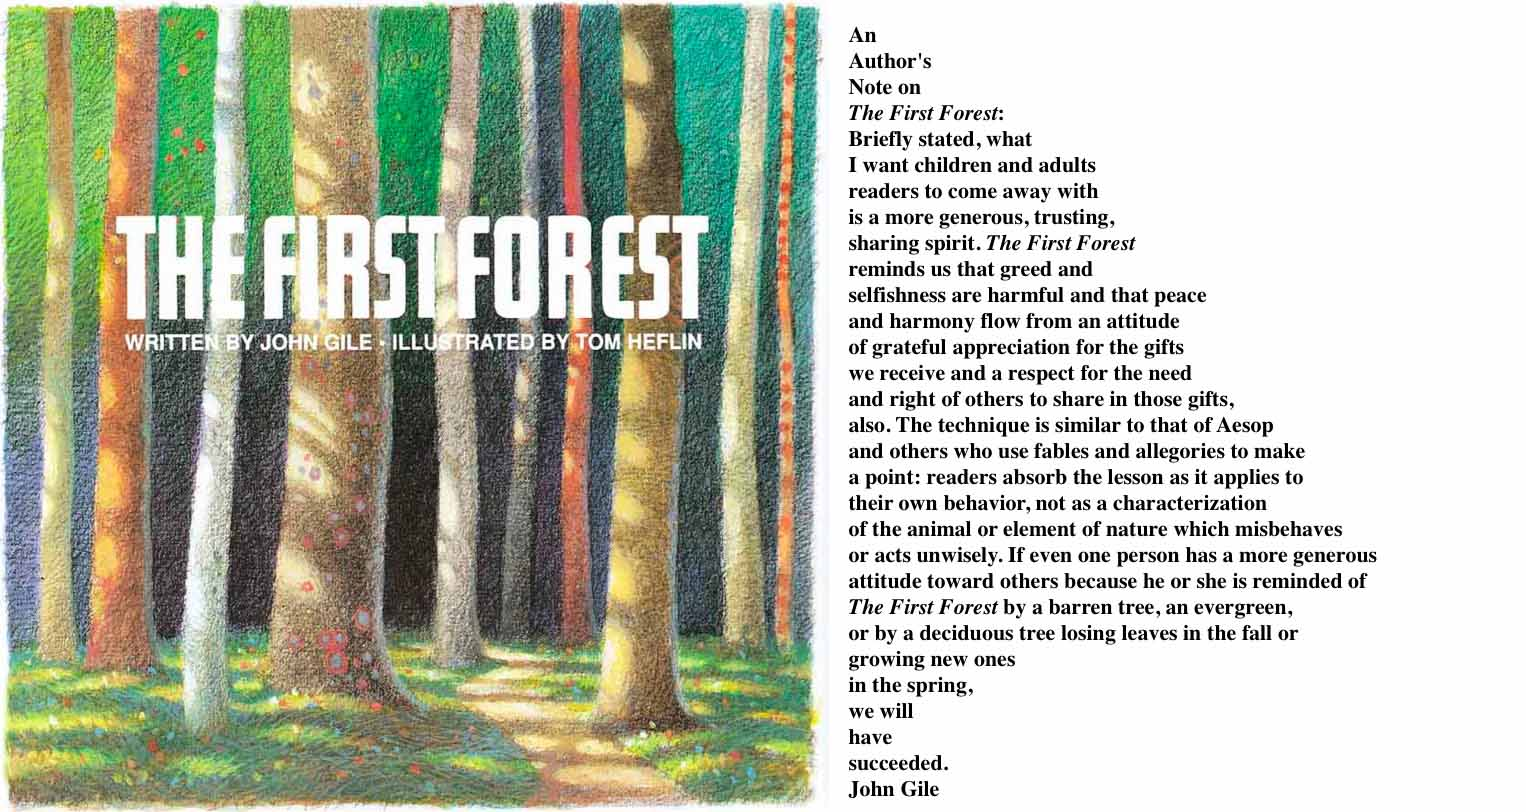 The First Forest note